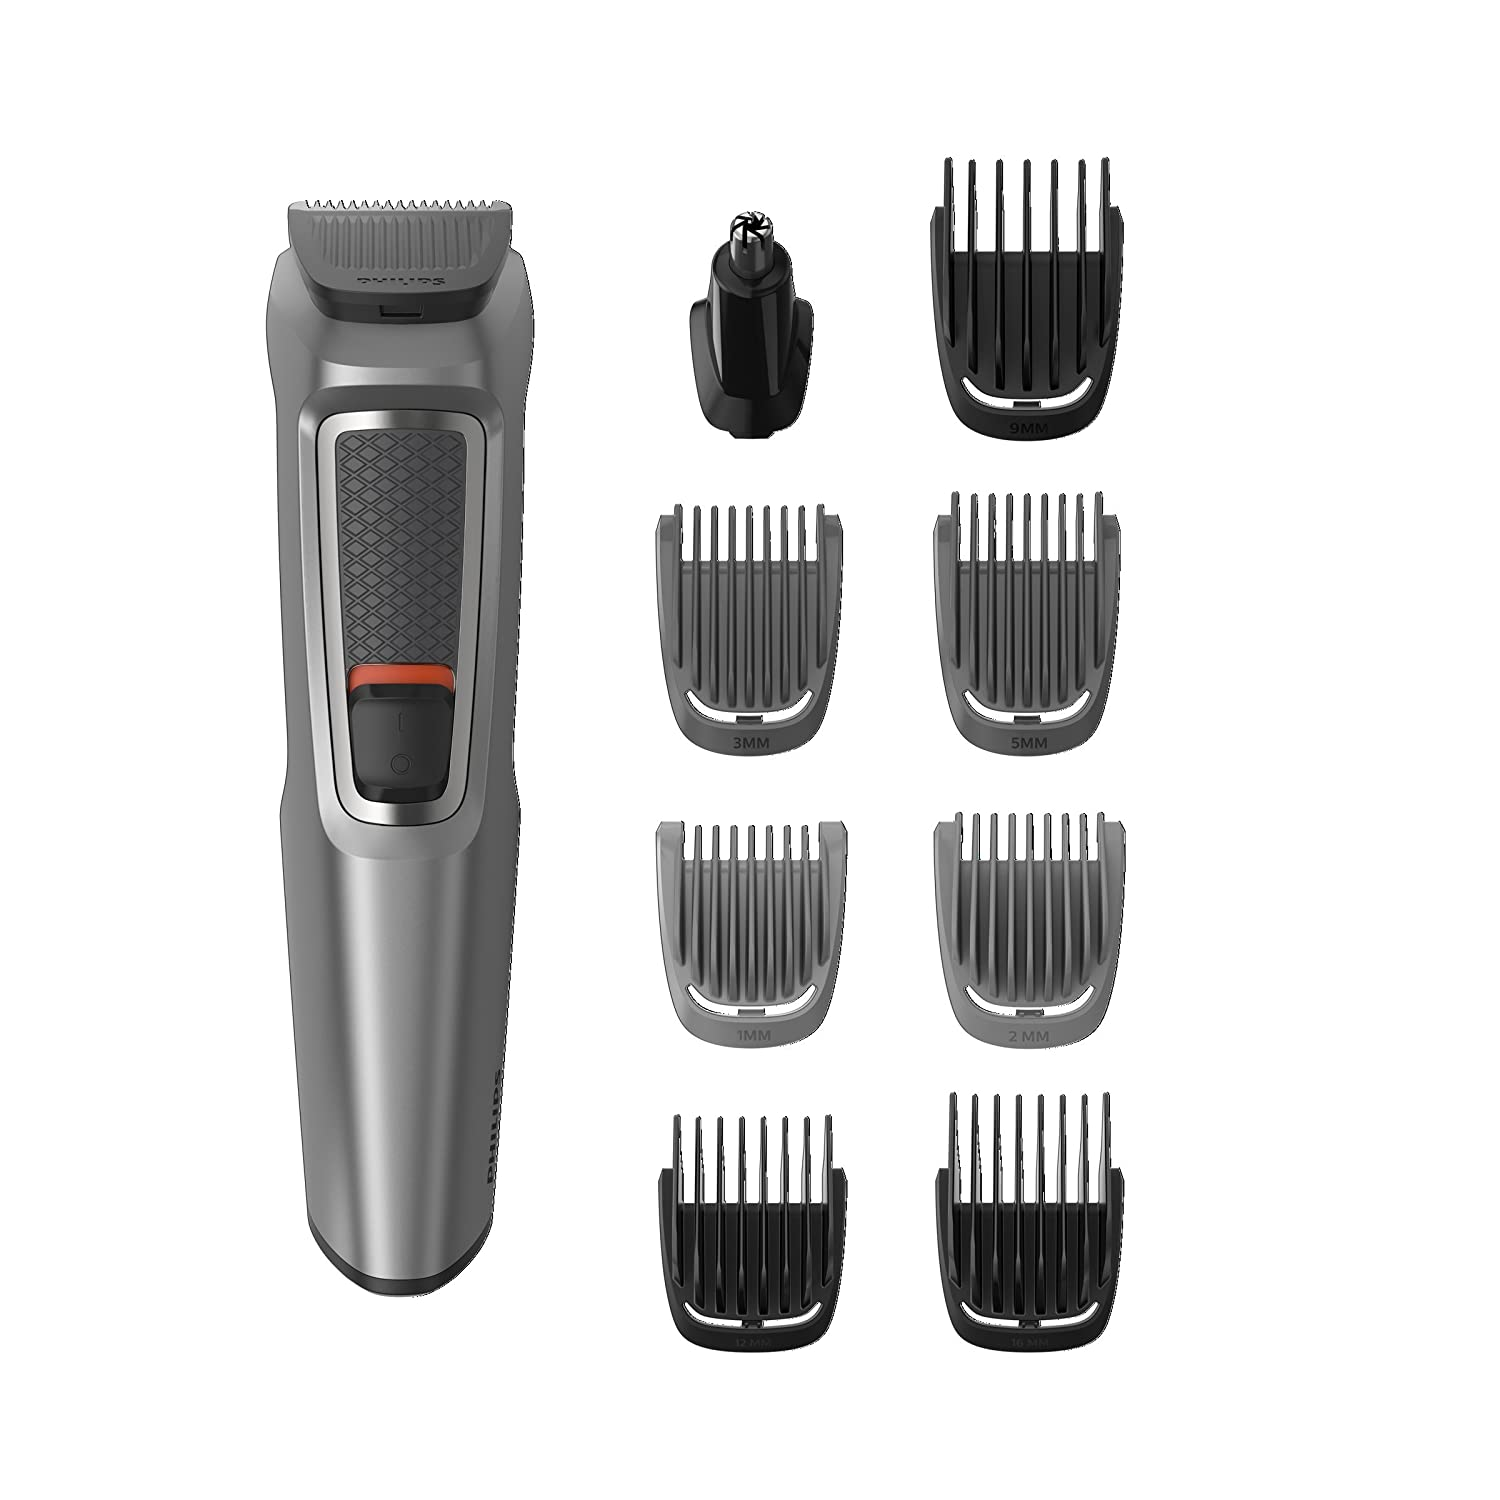 Philips Series 3000 10-in-1 Multi Grooming Kit for Beard, Hair and Body with Nose Trimmer Attachment - MG3747/33